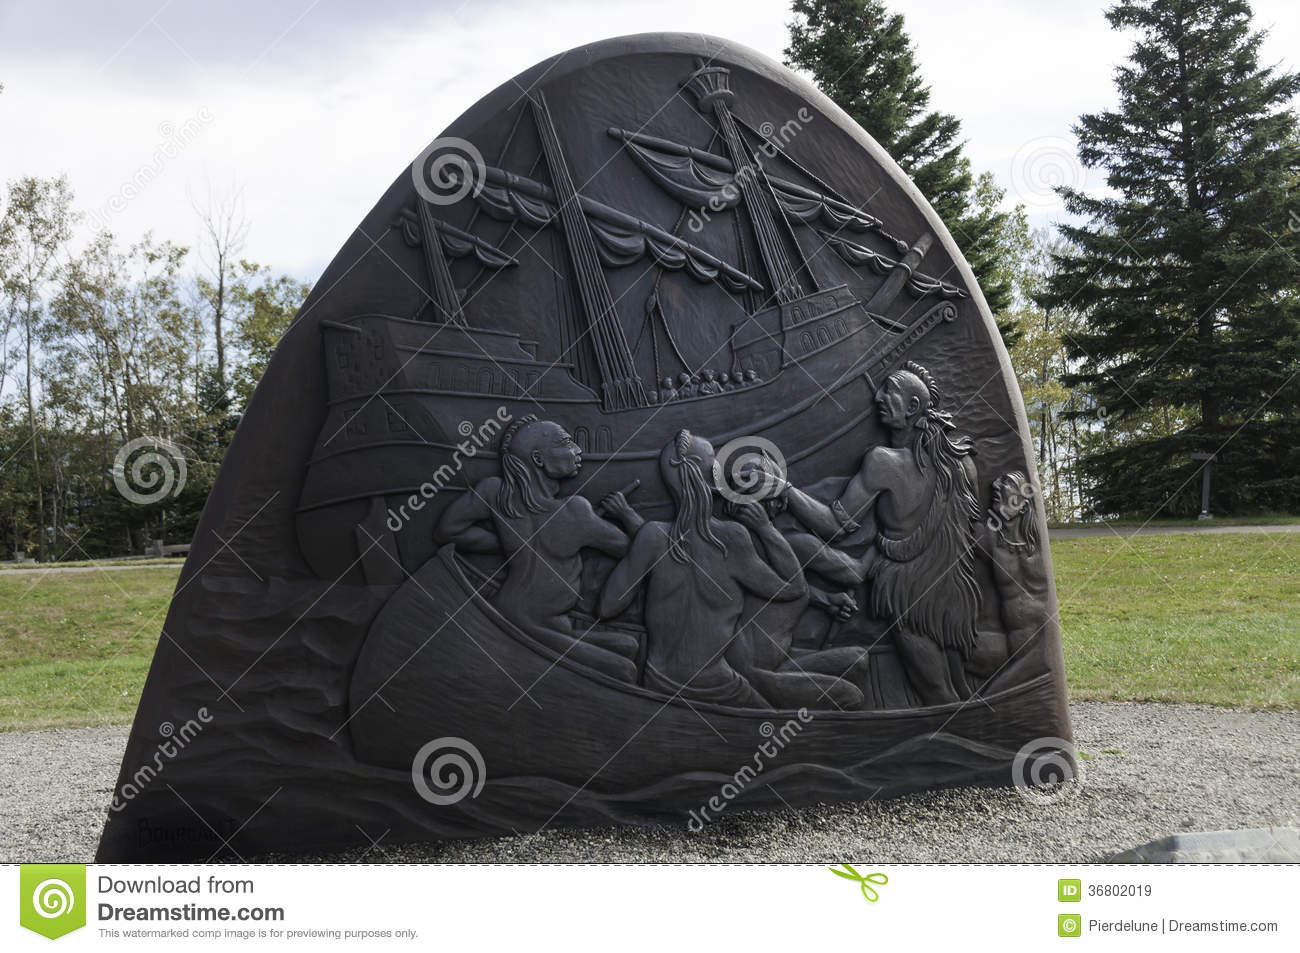 Historic Cast Iron Sculptures Of Gaspe Stock Image - Image